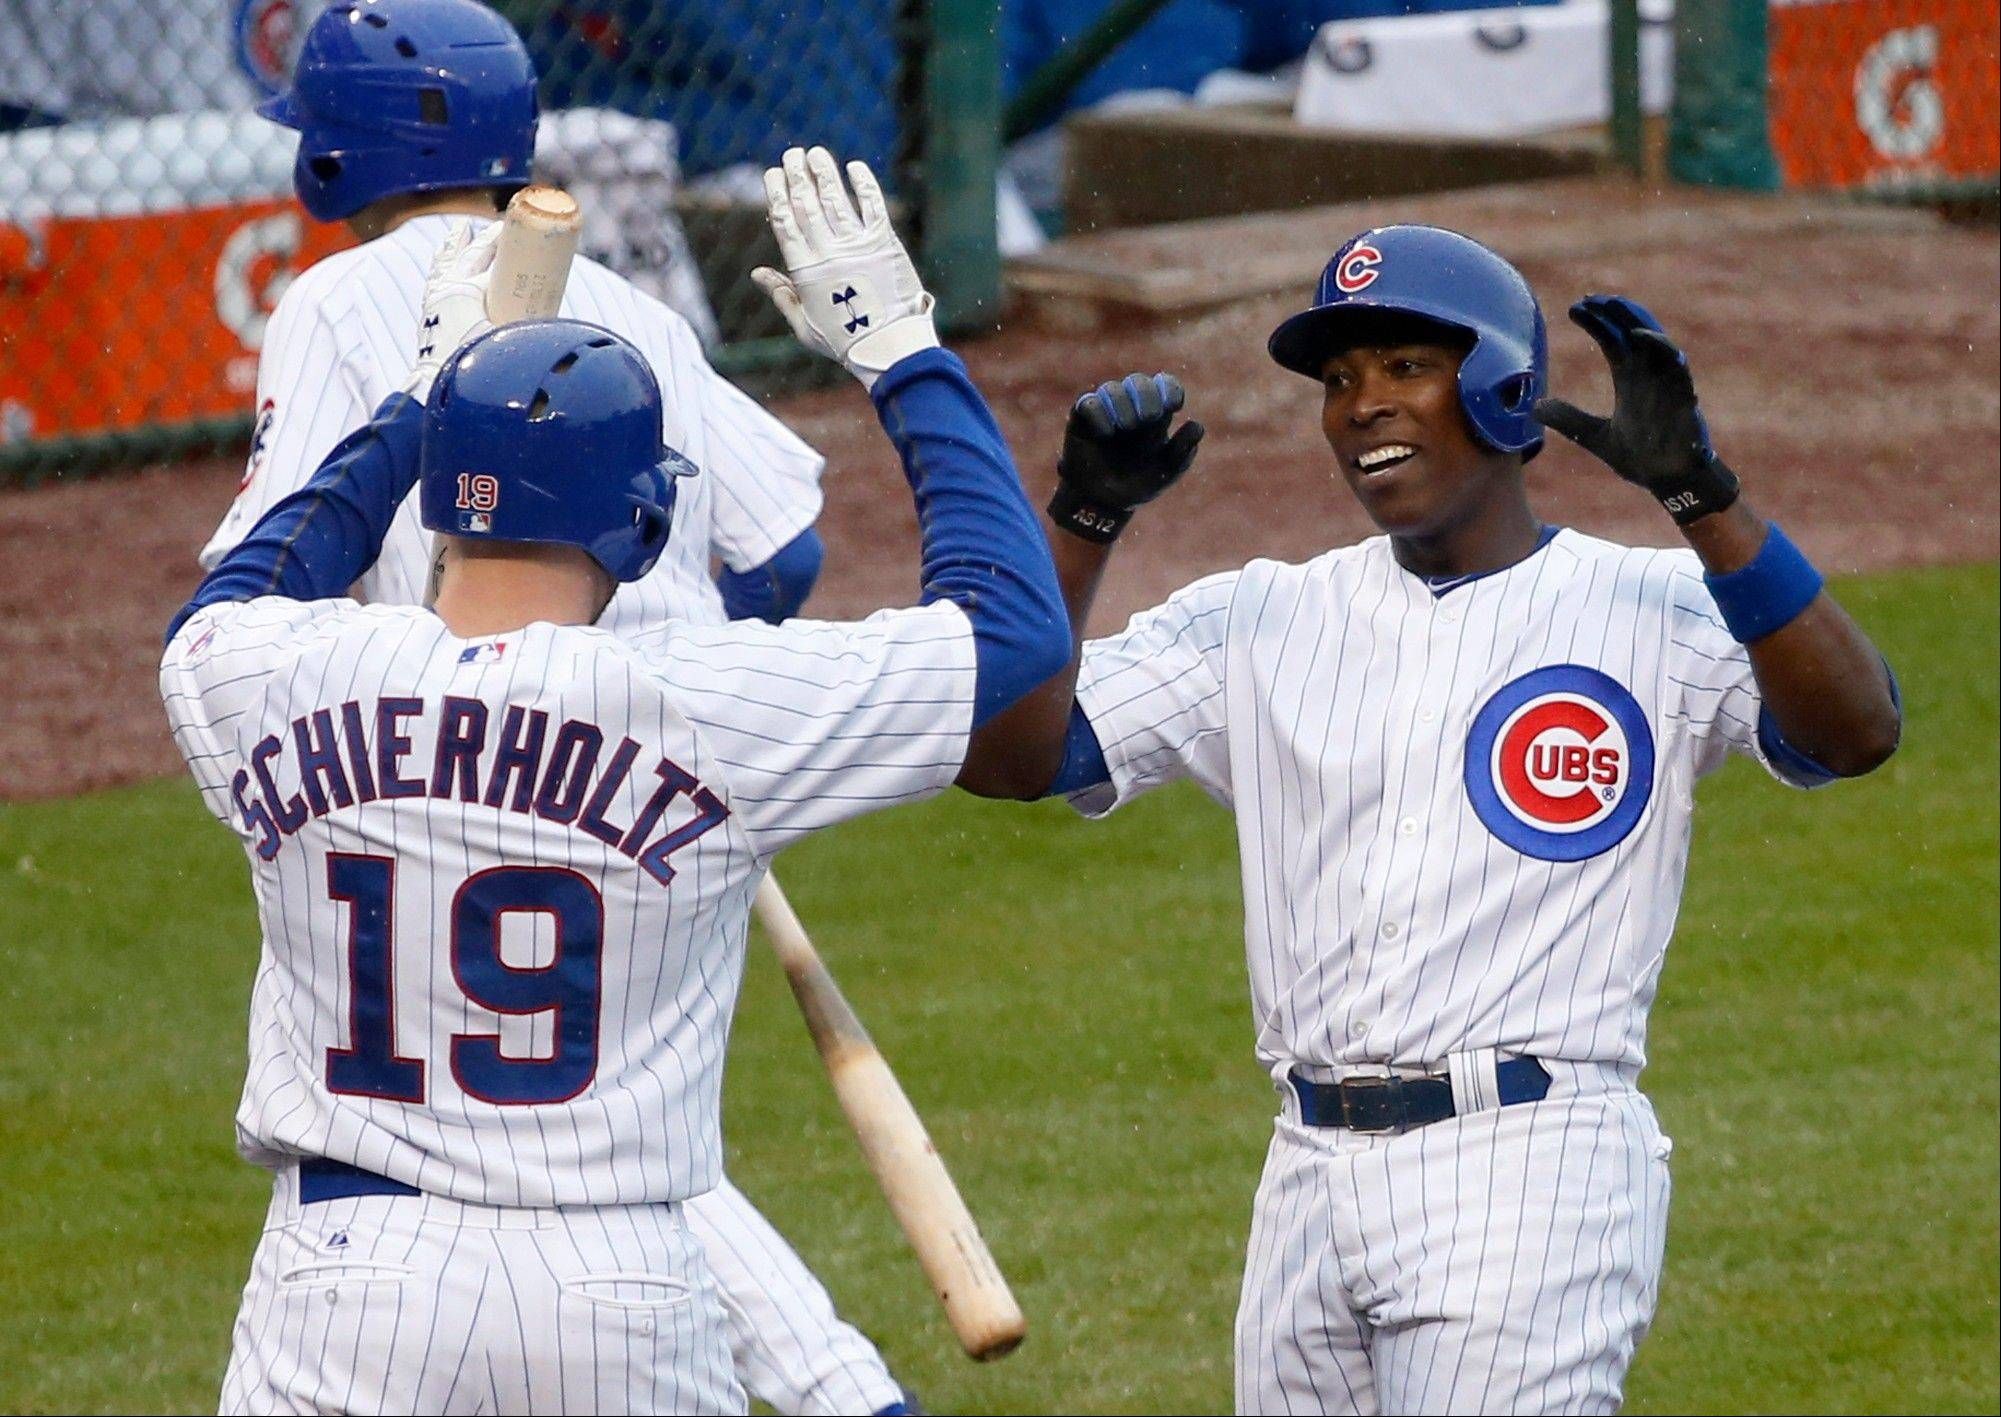 The Cubs' Alfonso Soriano, right, is greeted at home by Nate Schierholtz after Soriano's first homer of the season Thursday against the Rangers at Wrigley Field.